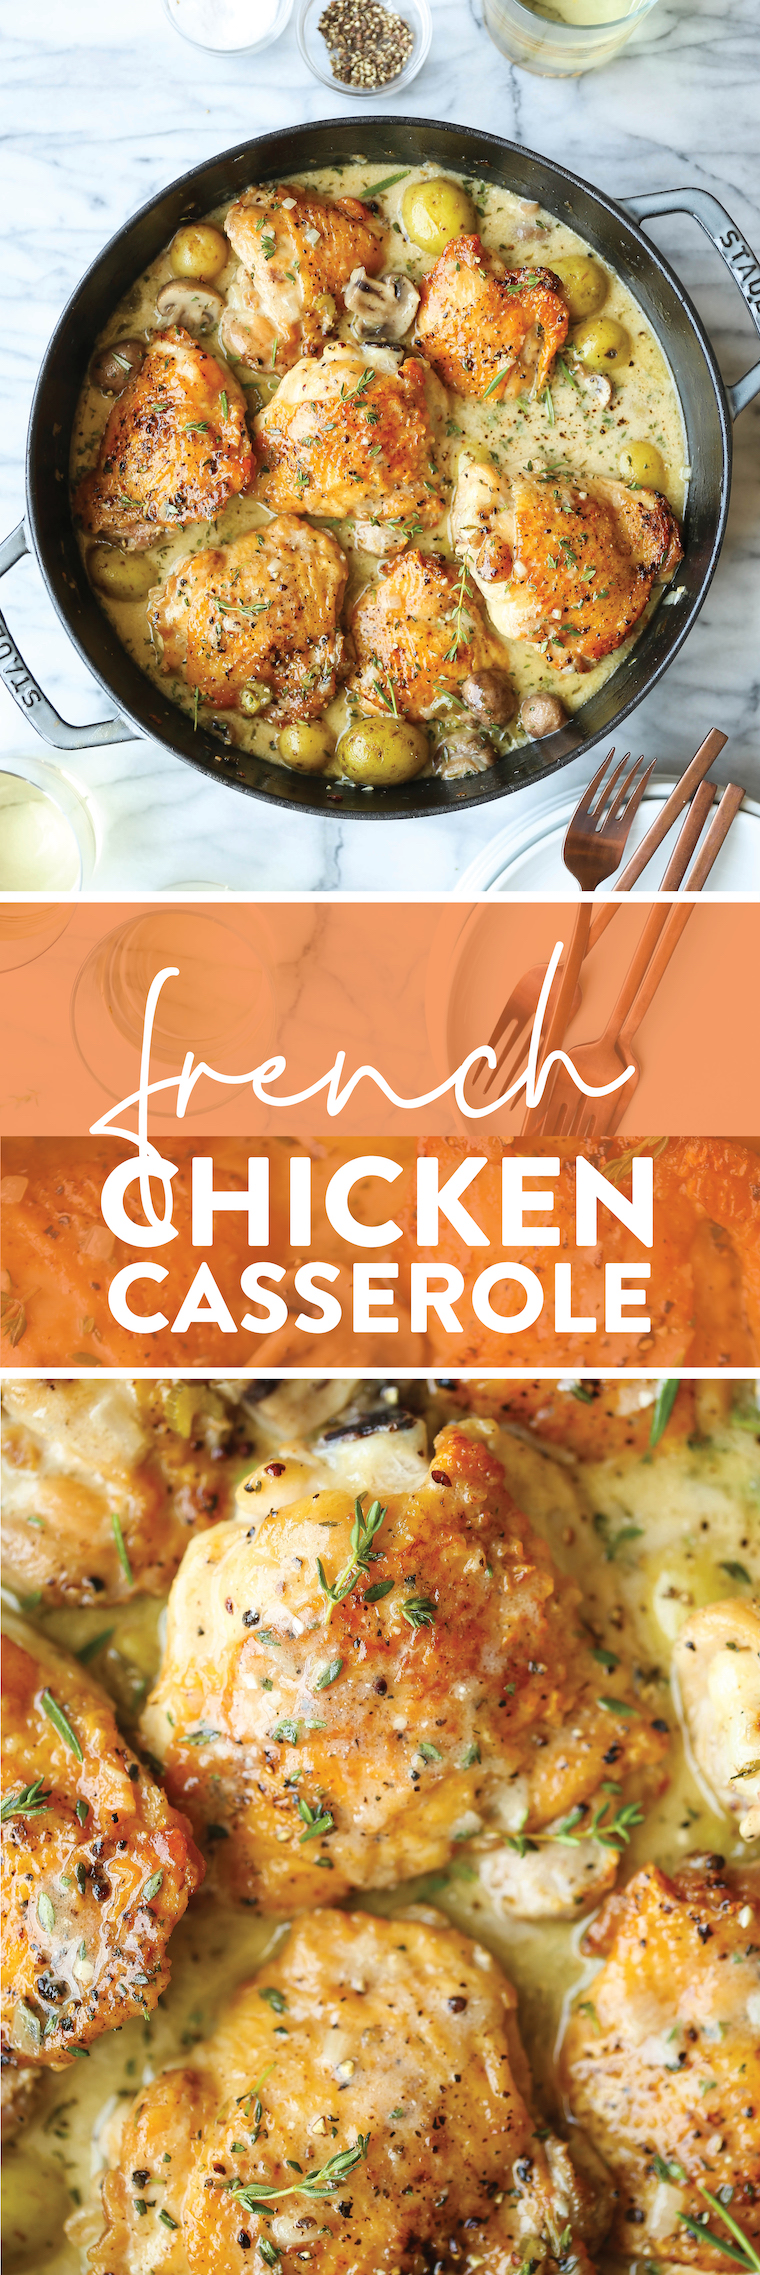 French Chicken Casserole - The coziest, most wholesome meal. With golden brown chicken, tender potatoes, white wine, fresh rosemary + thyme.